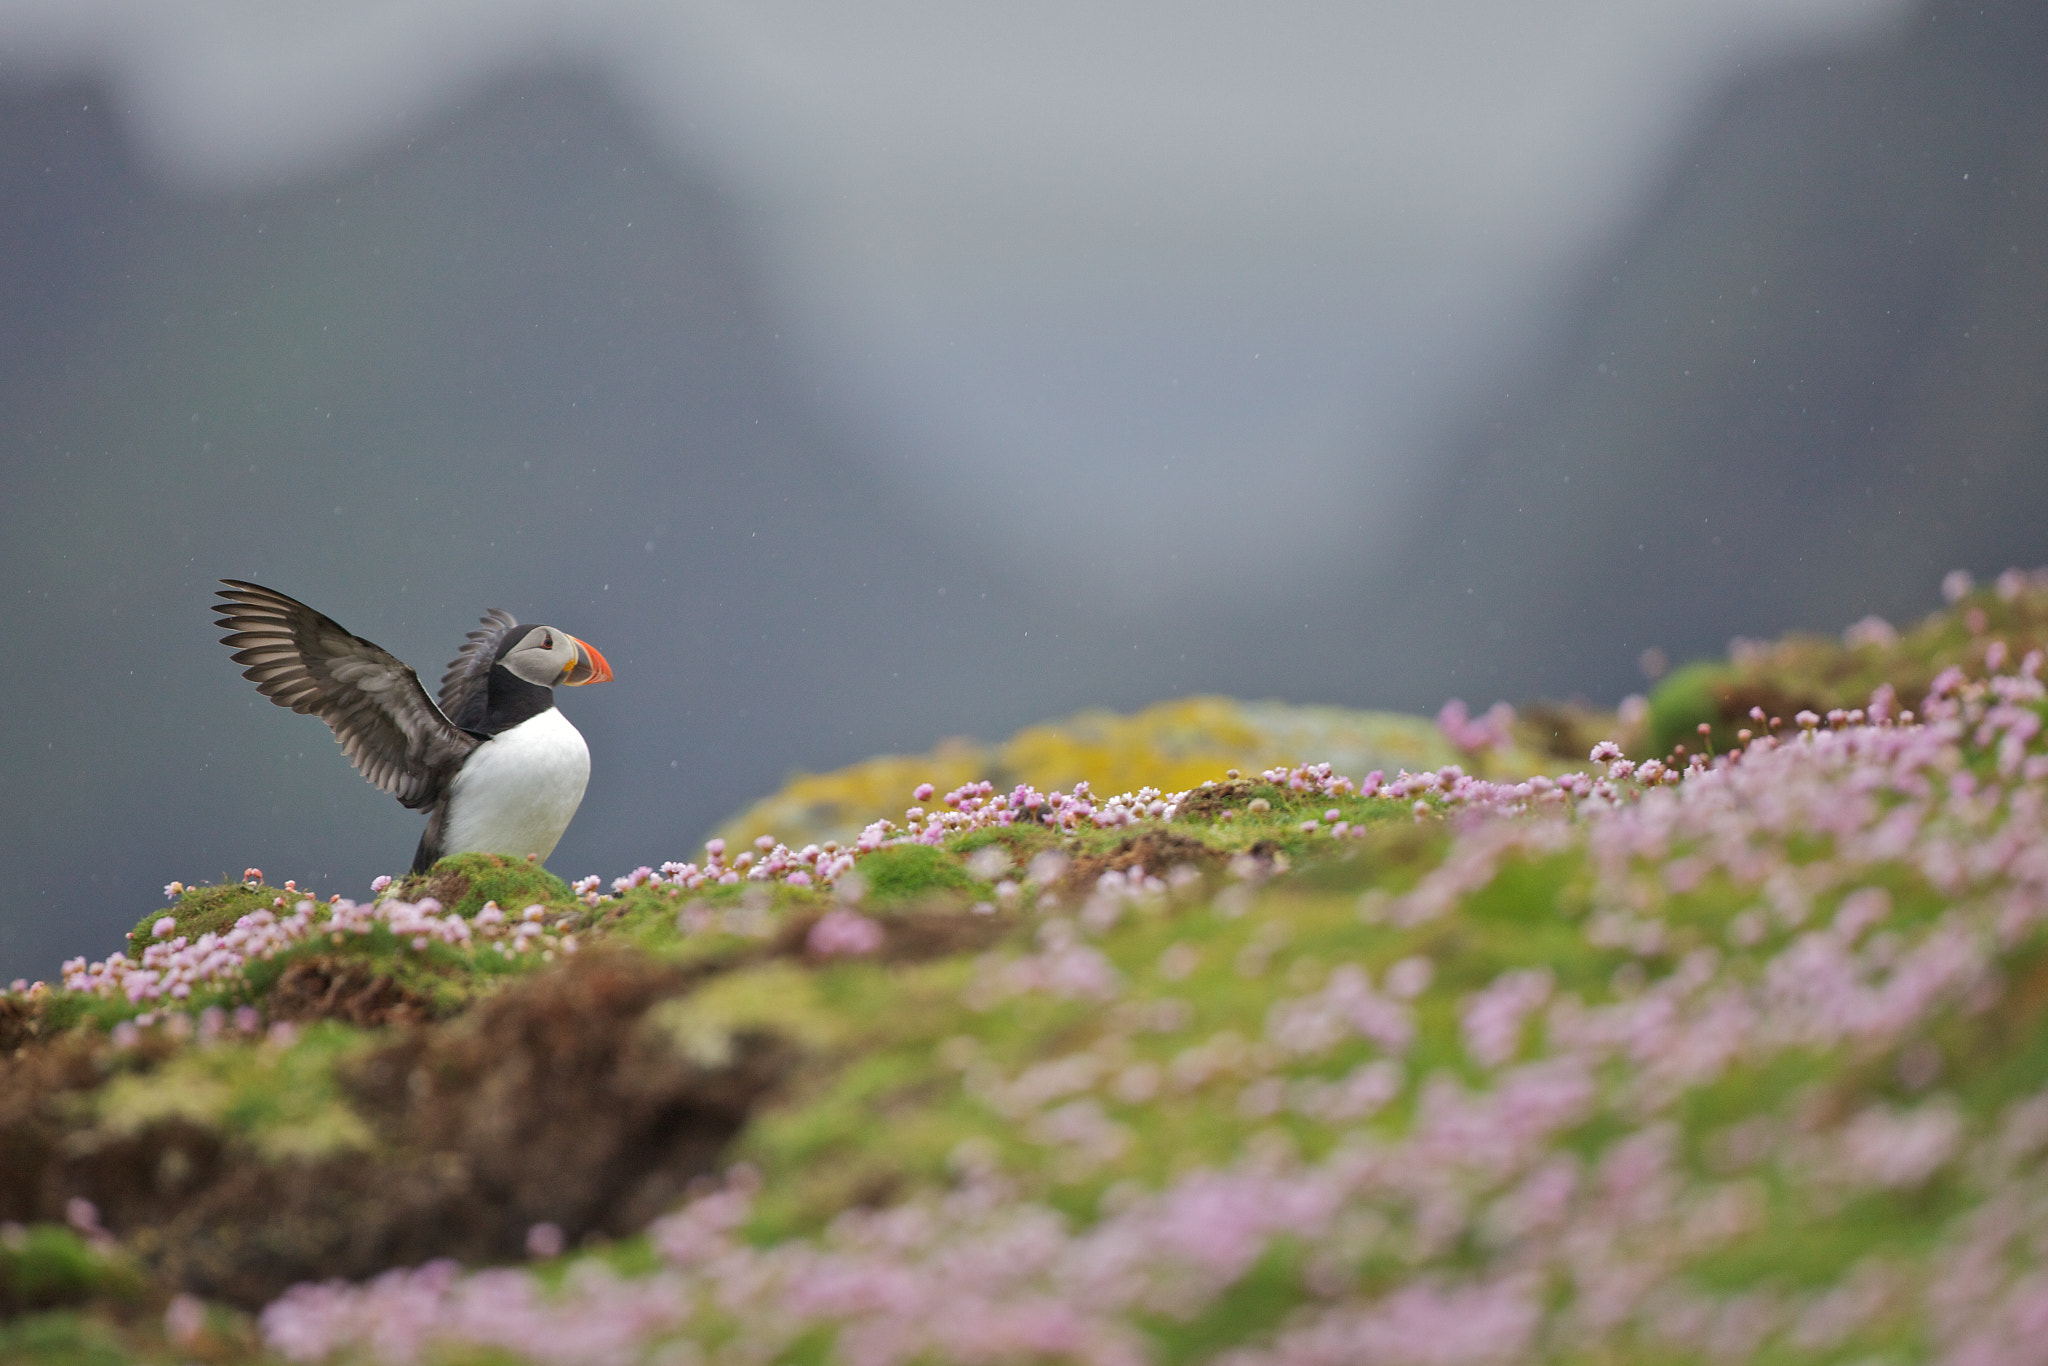 Photograph Puffin in the rain by Nicola Di Sario on 500px